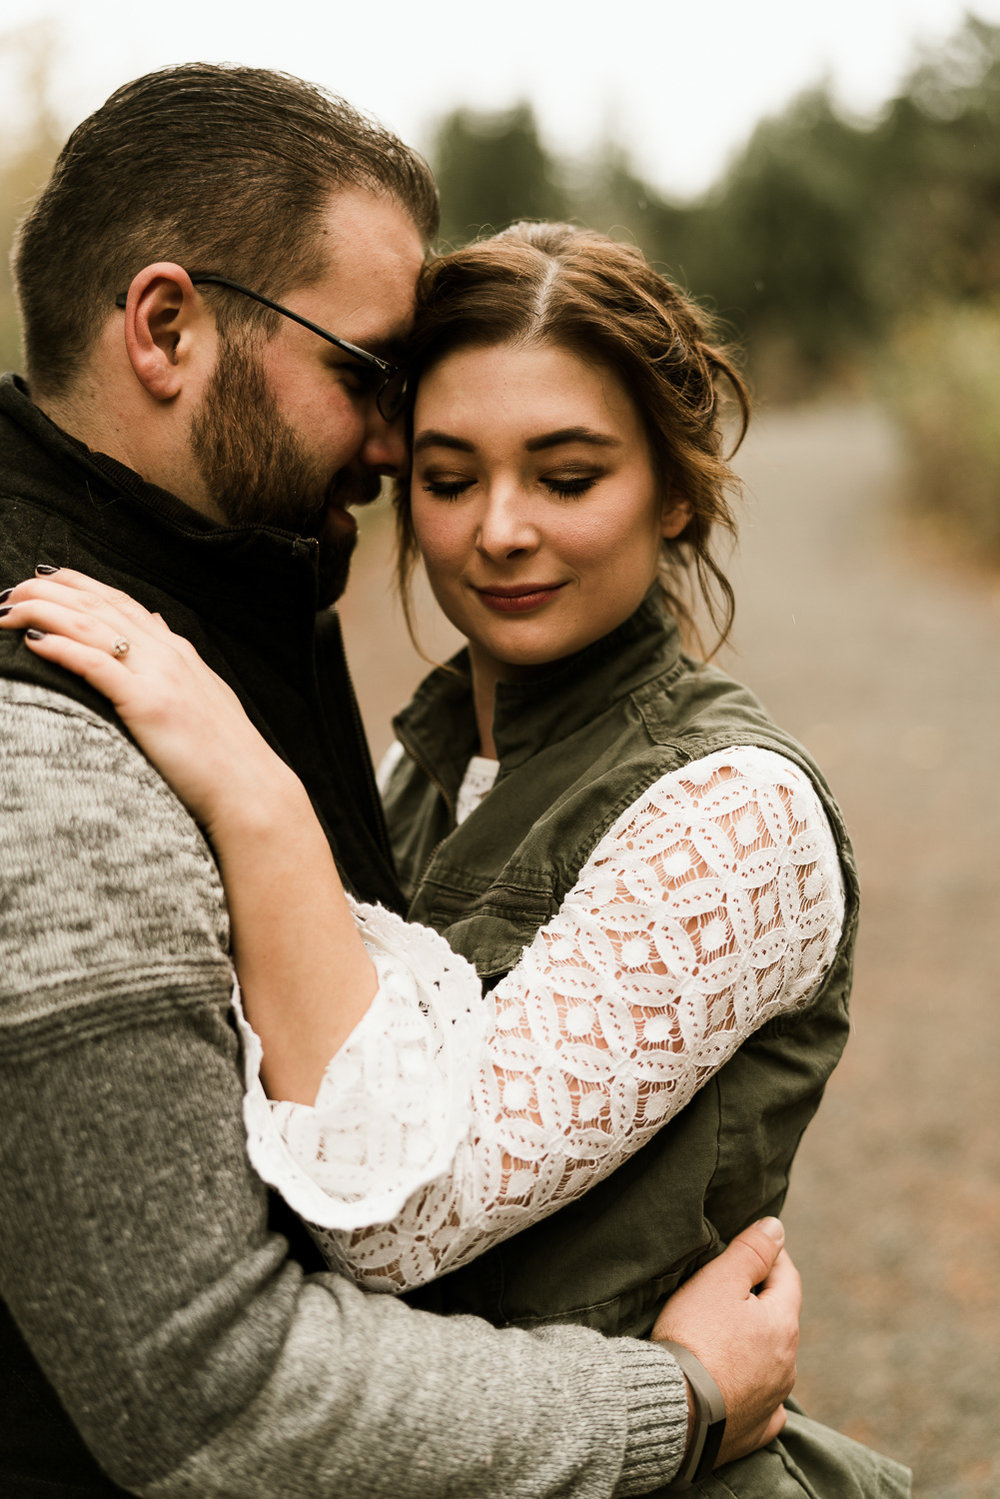 A Picturesque PNW Engagement Session | Snoqualmie Falls | Seattle Wedding photographer-2.jpg